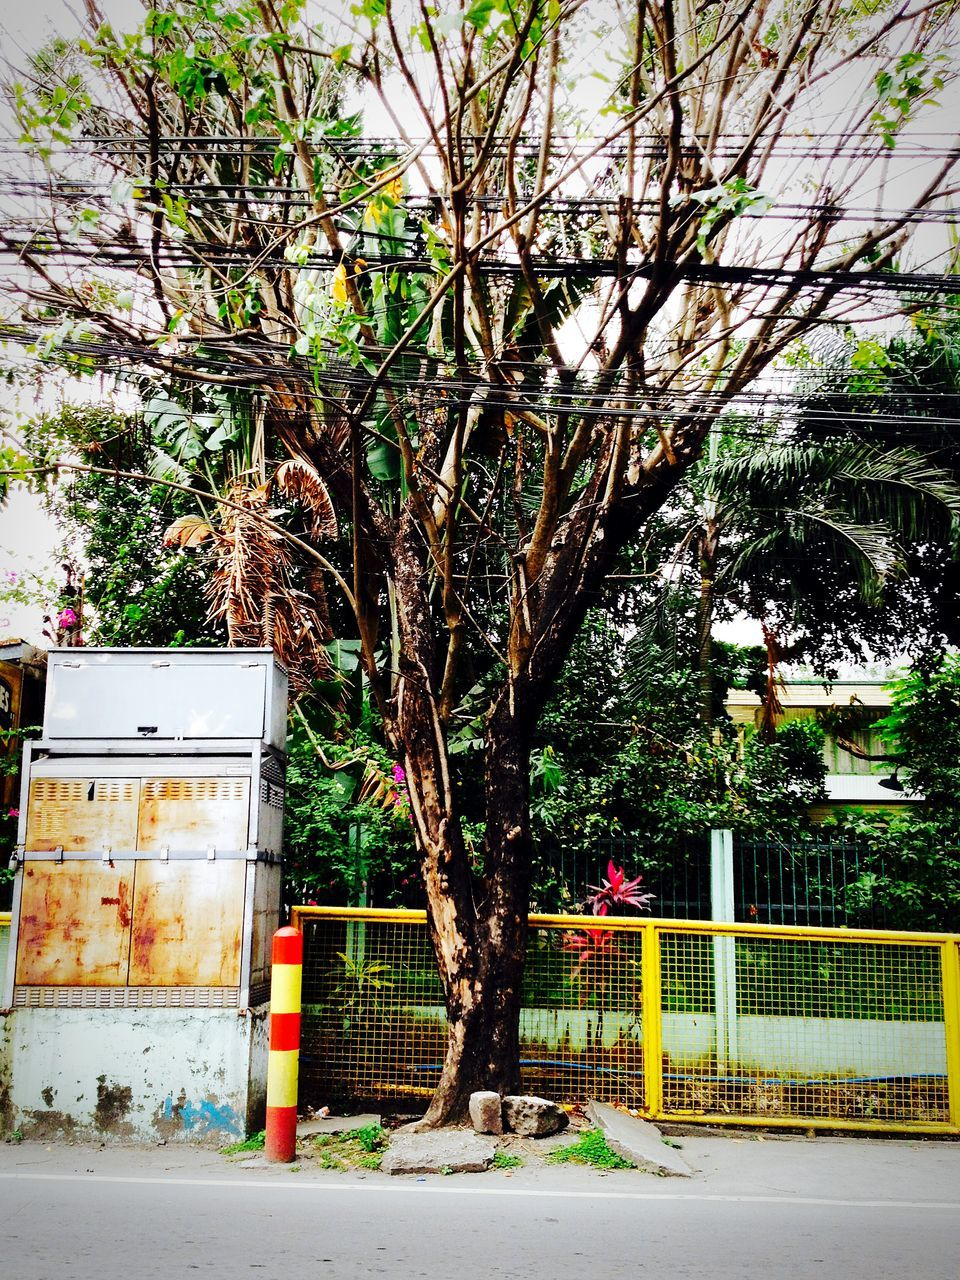 tree, no people, outdoors, day, built structure, architecture, building exterior, nature